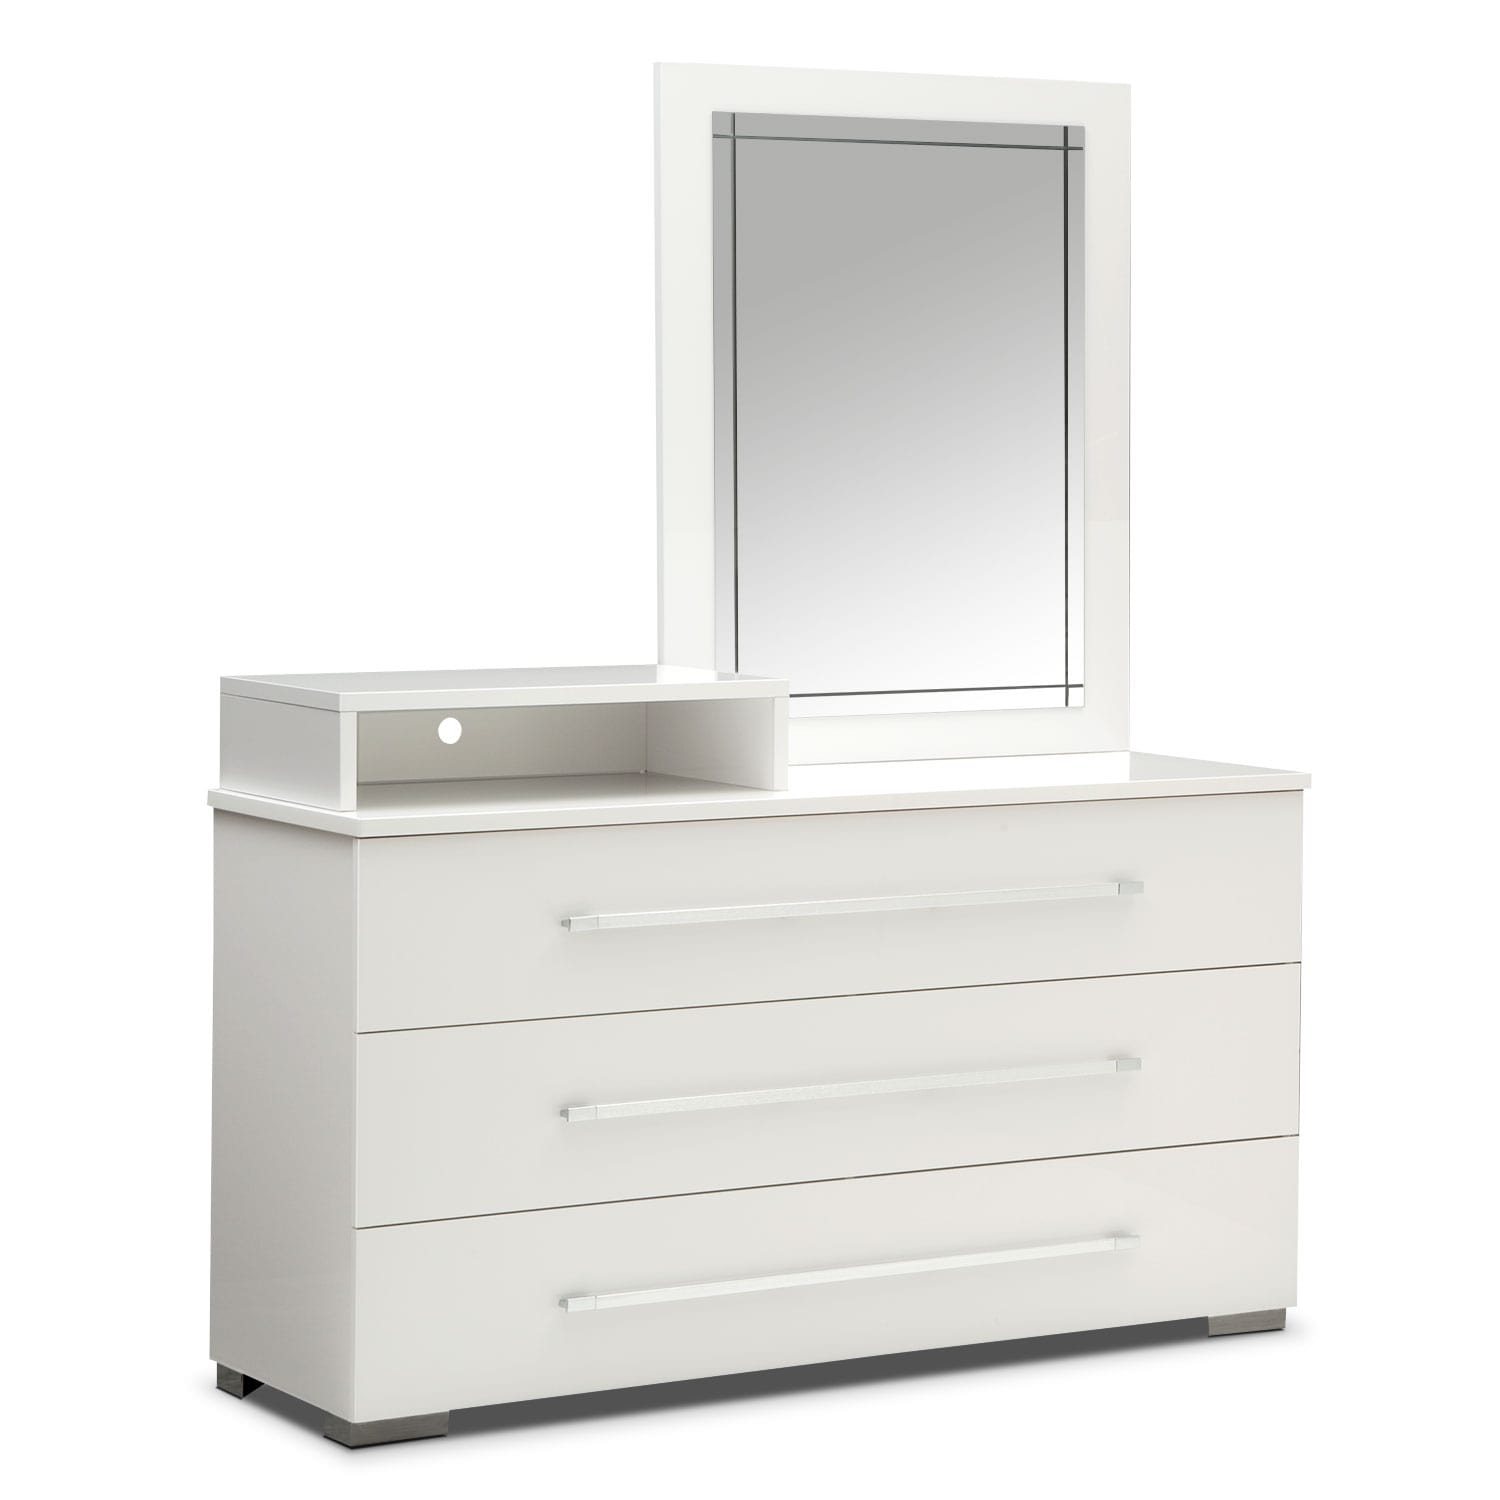 Bedroom Furniture - Dimora White Dresser with Deck & Mirror